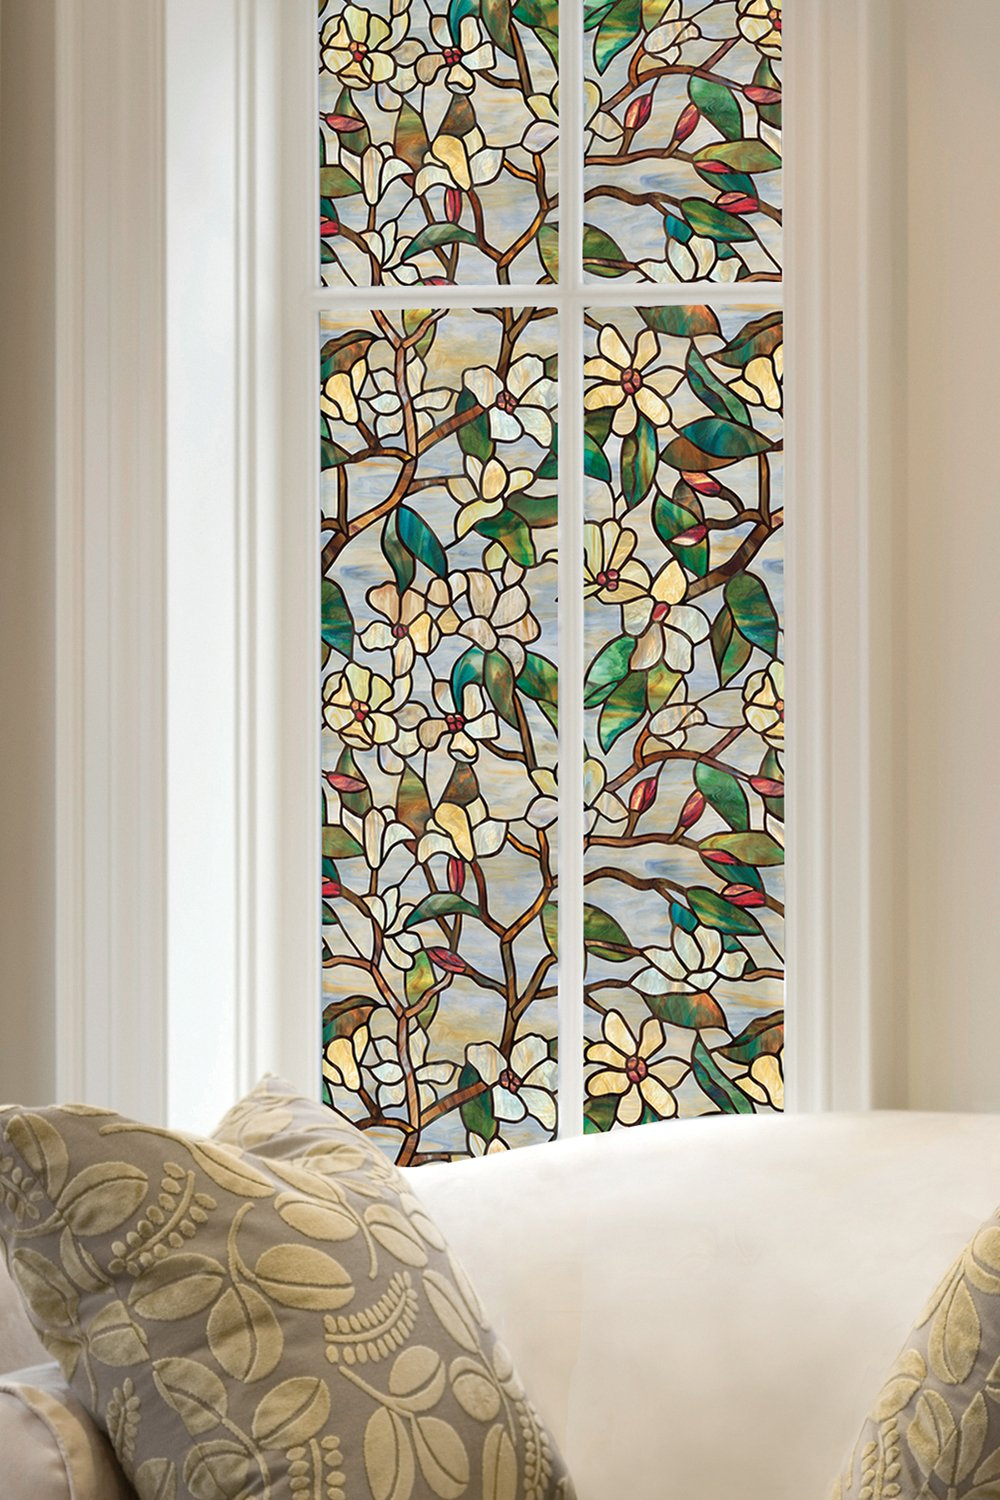 ARTSCAPE Summer Magnolia Window Film 24'' x 36''